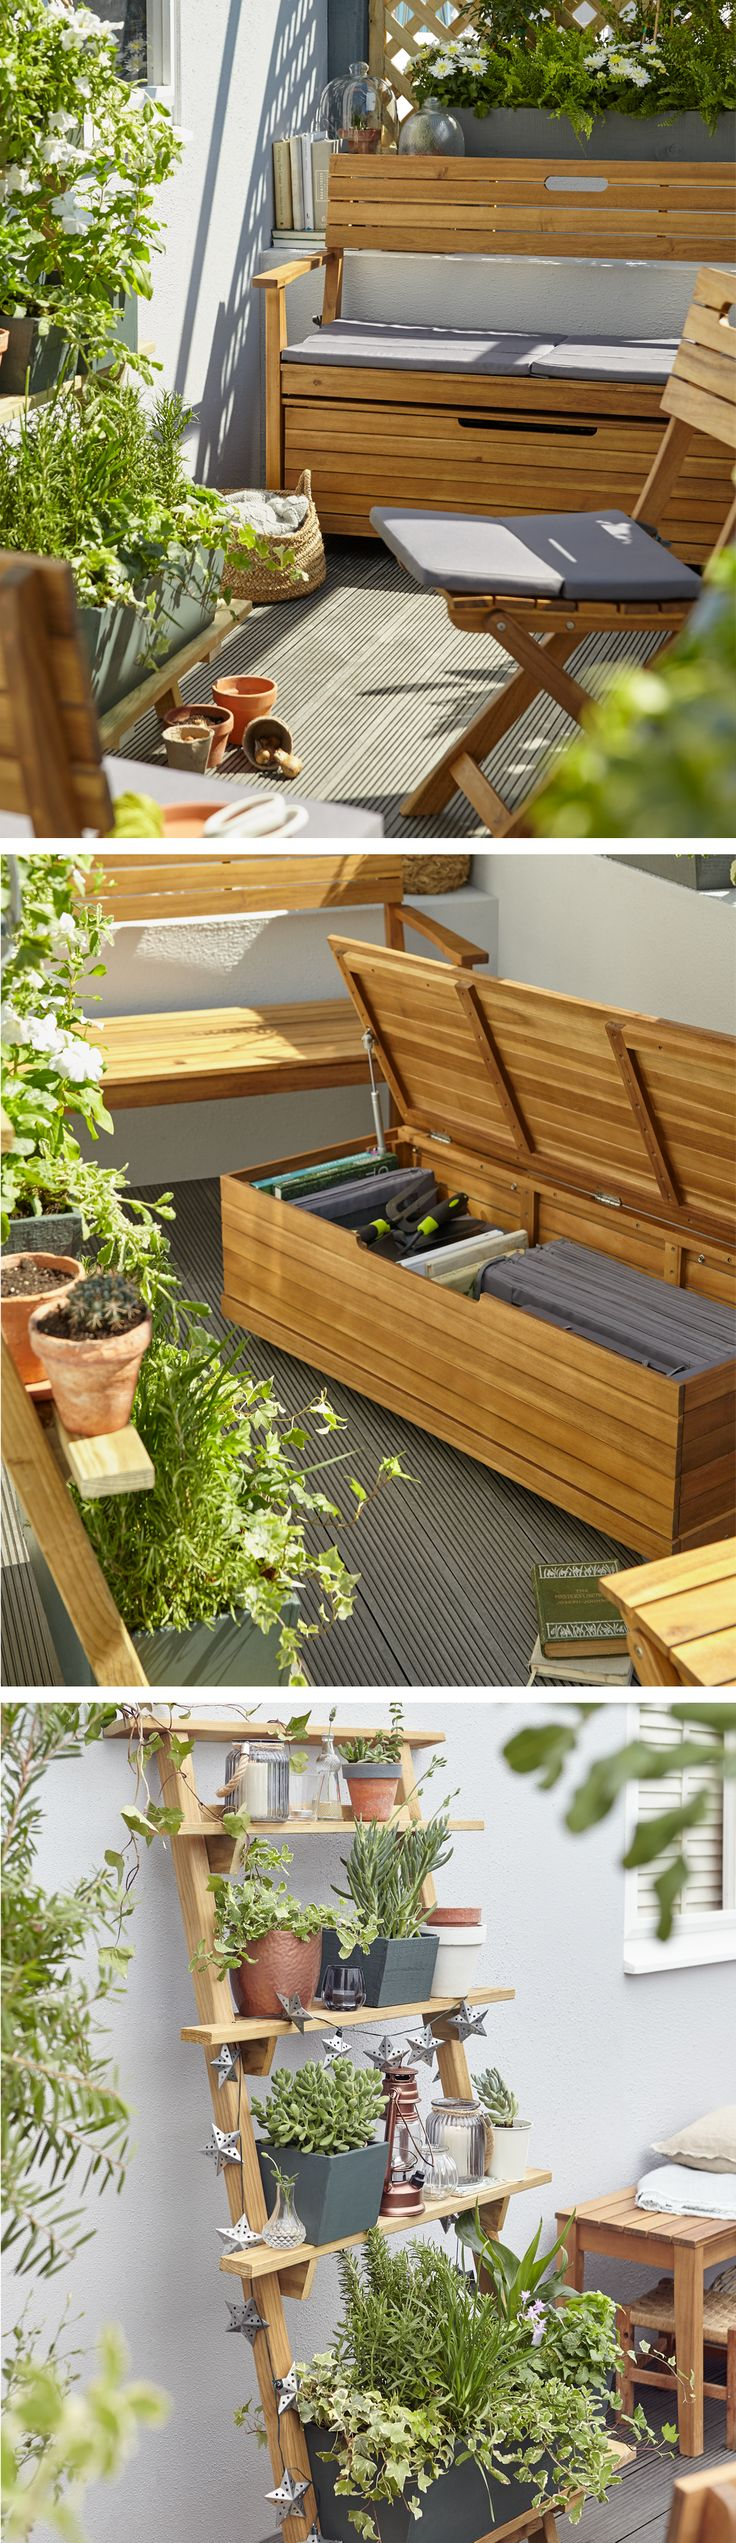 Balcony furniture diy - A Small Garden Or Balcony Can Still Be Ultra Stylish Invest In Seating That Doubles